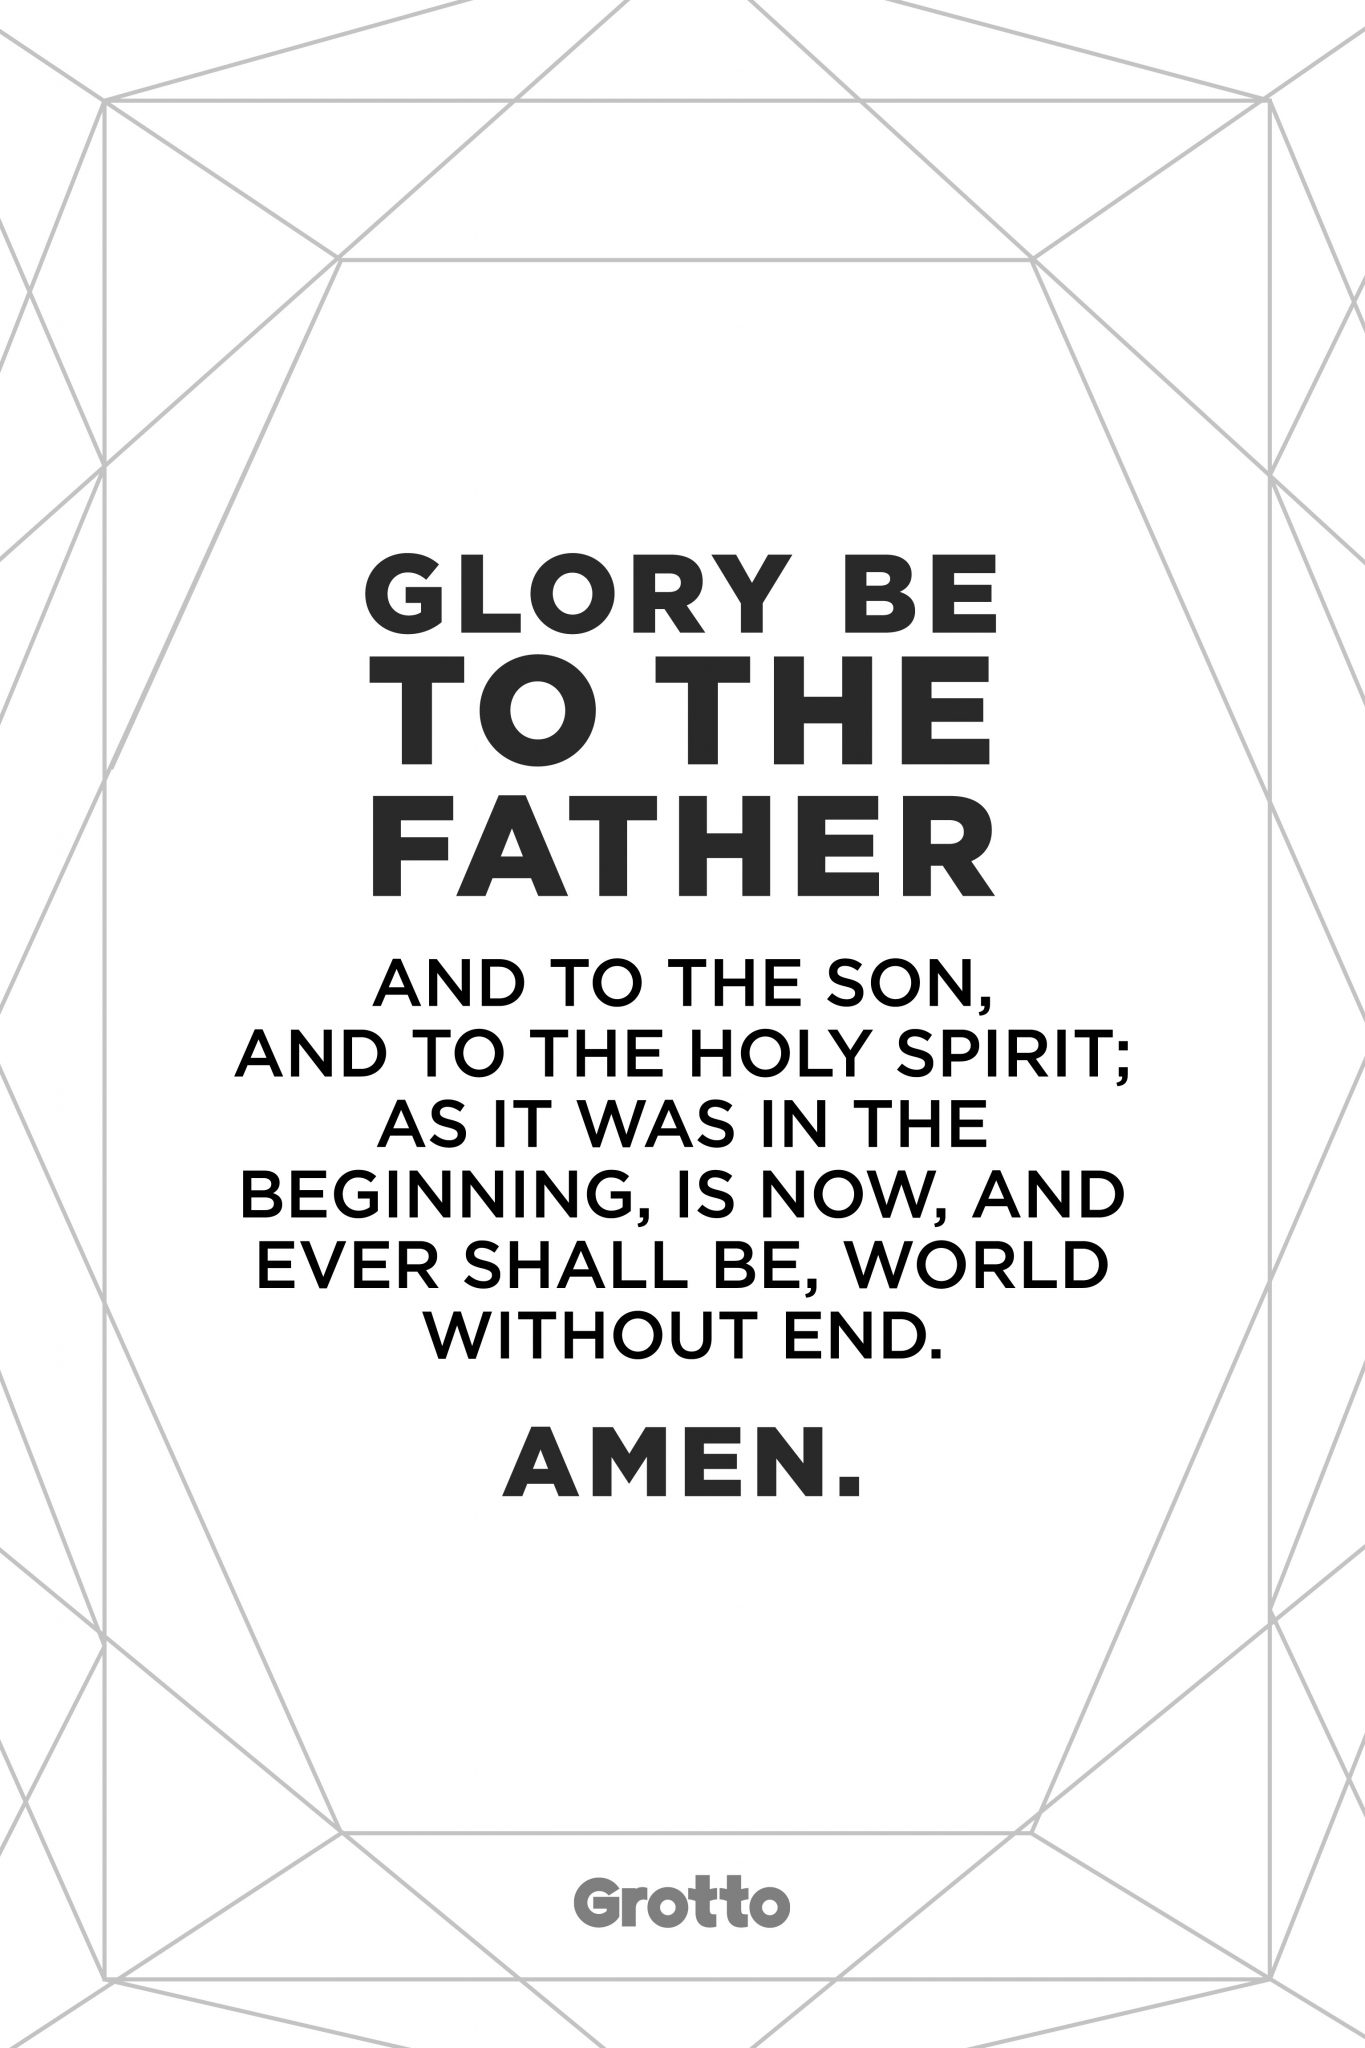 """Grotto prayer graphic of the """"Glory Be"""" prayer. The graphic reads, """"Glory be to the Father and to the Son, and to the Holy Spirit; as it was in the beginning, is now, and ever shall be, world without end. Amen."""""""